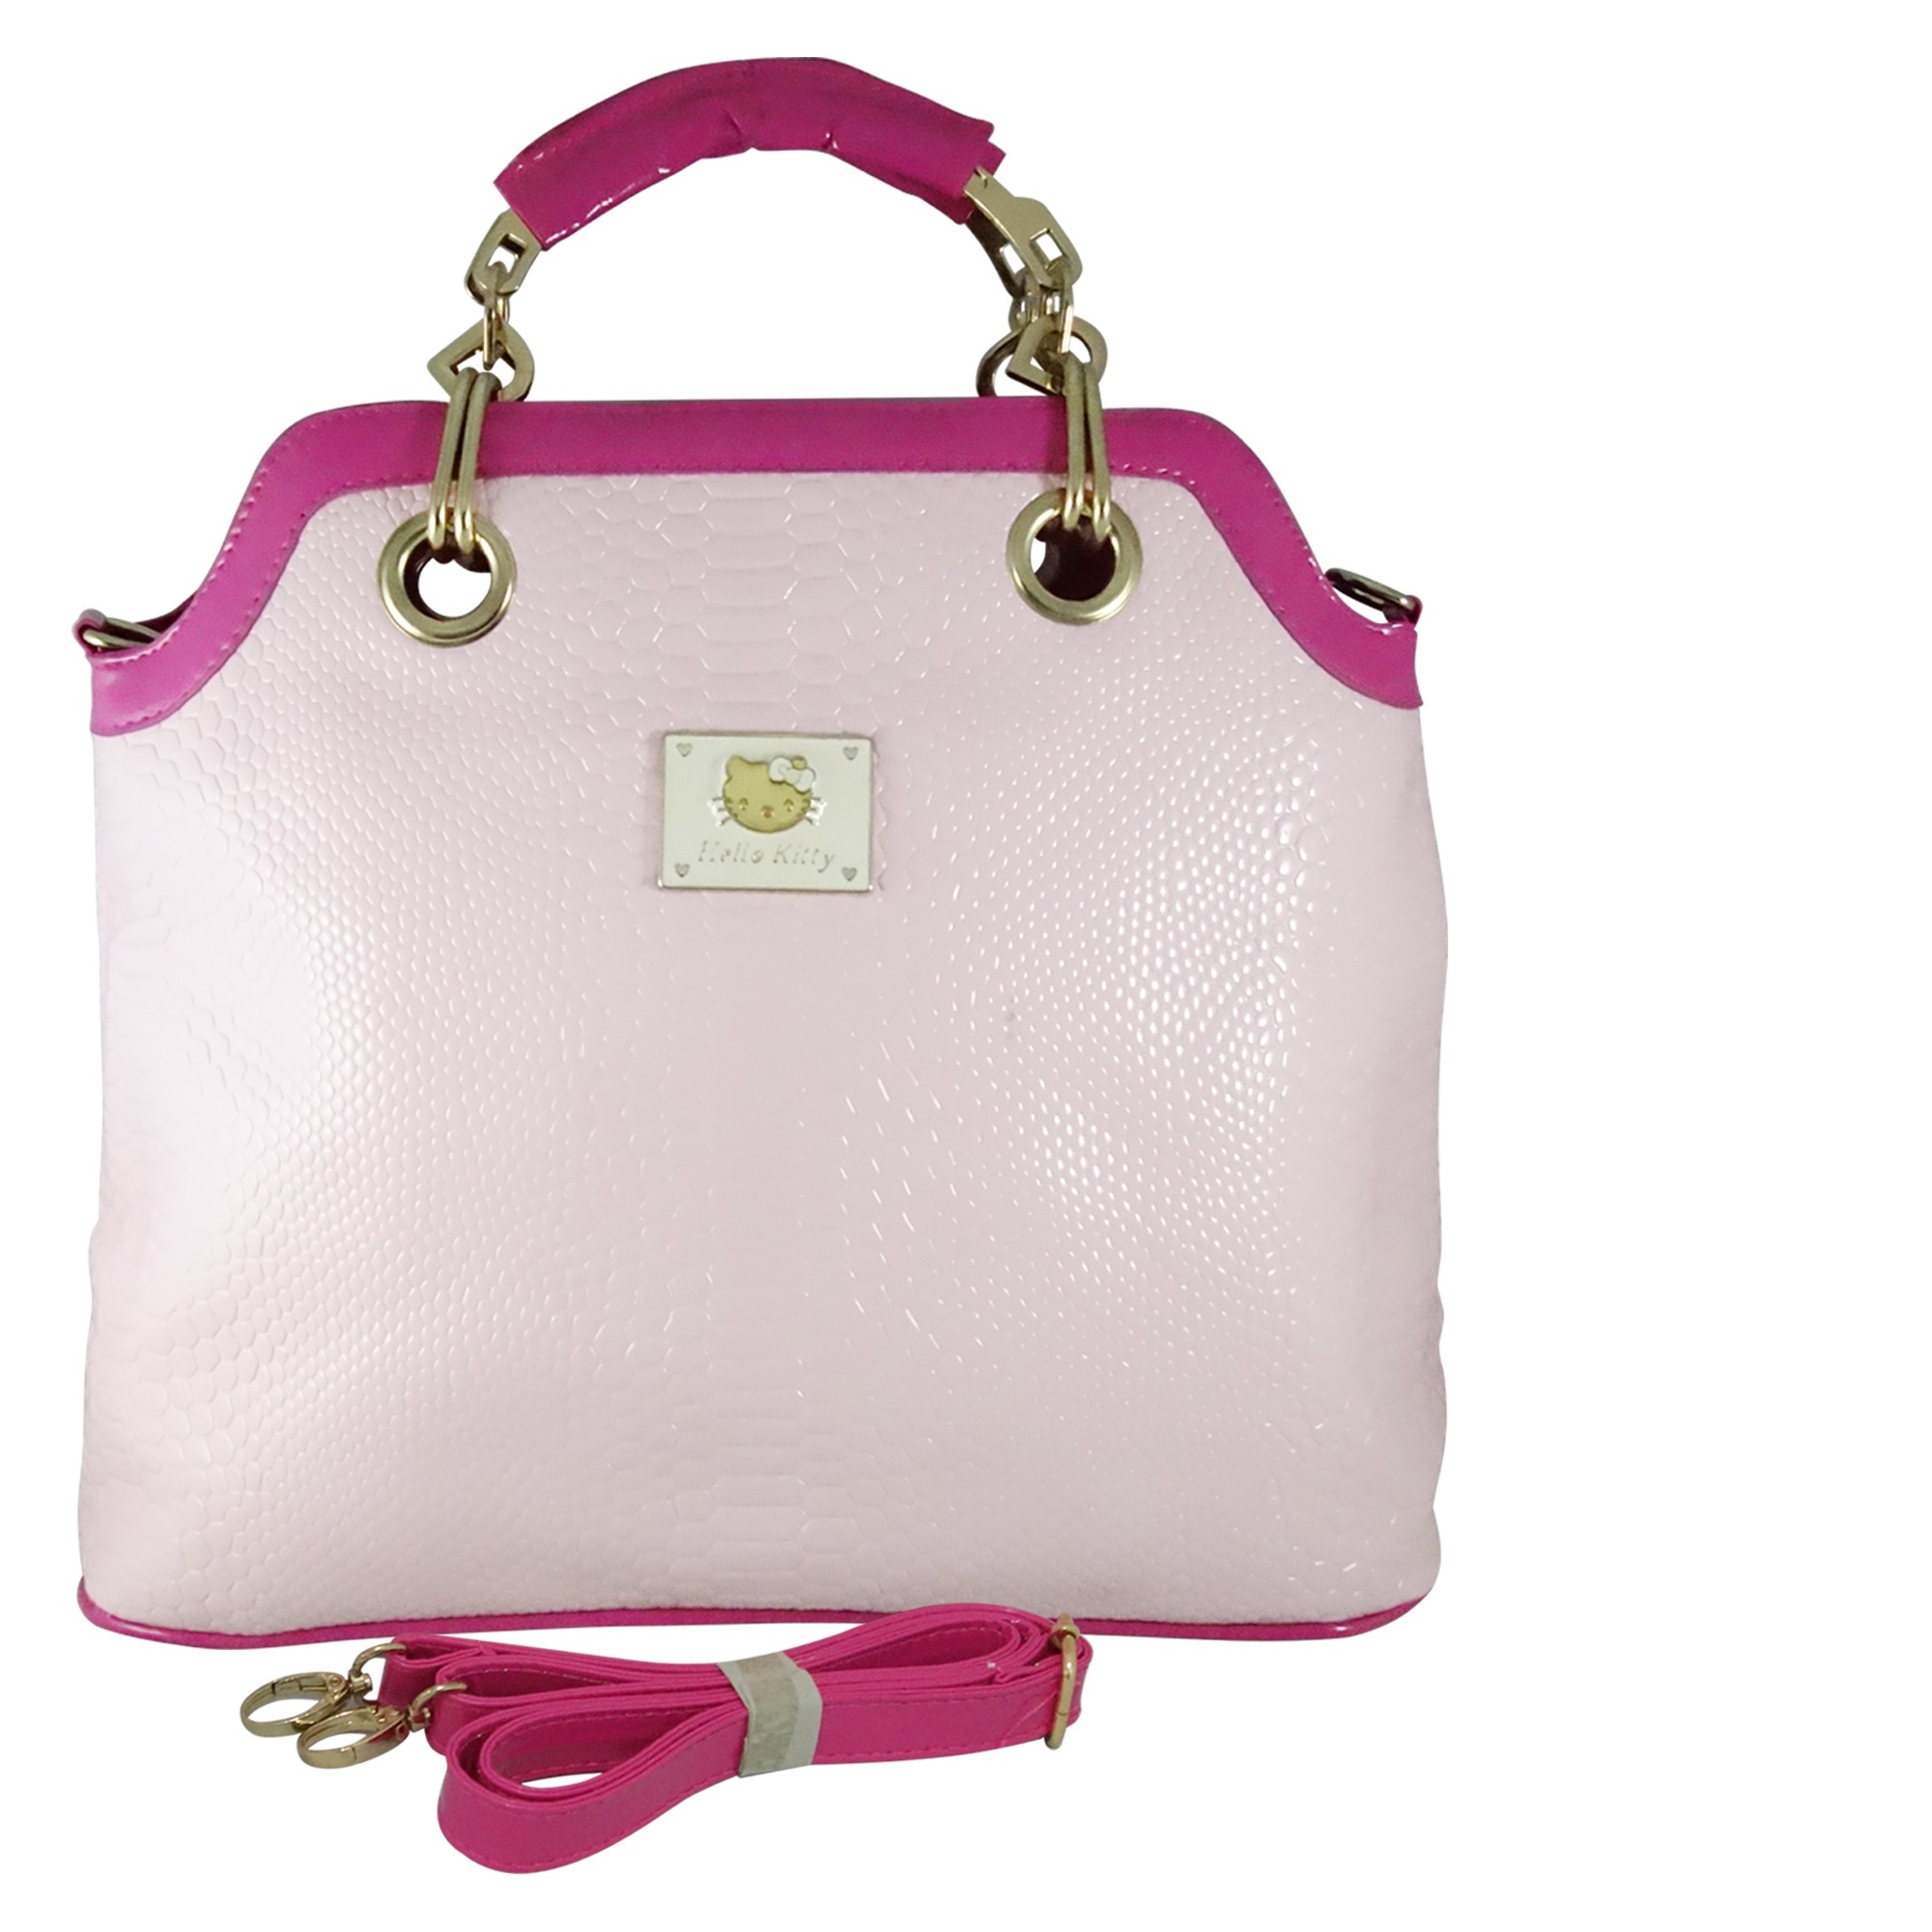 4527599f5 fit to viewer. prev next. Women Bag Character Hello Kitty Blush Pink